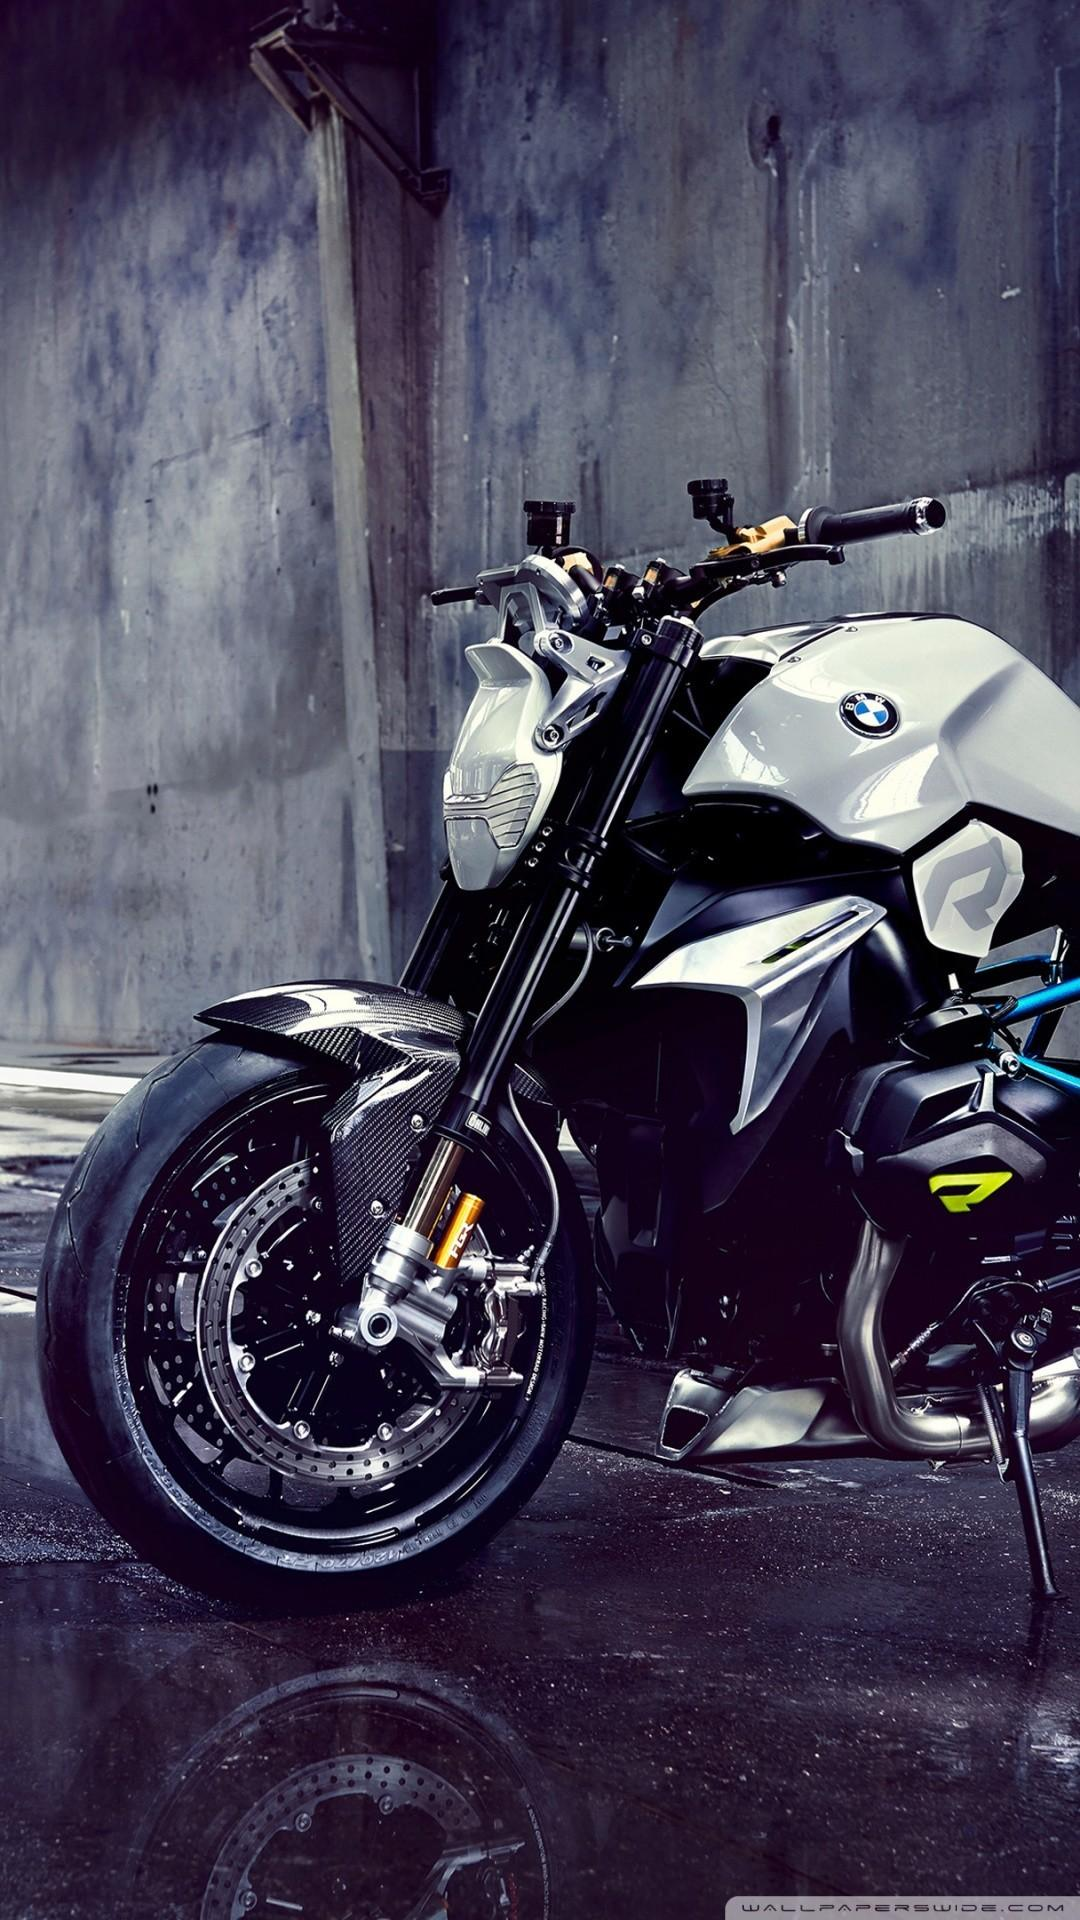 Bmw Bike Hd Android Phone Wallpapers Wallpaper Cave